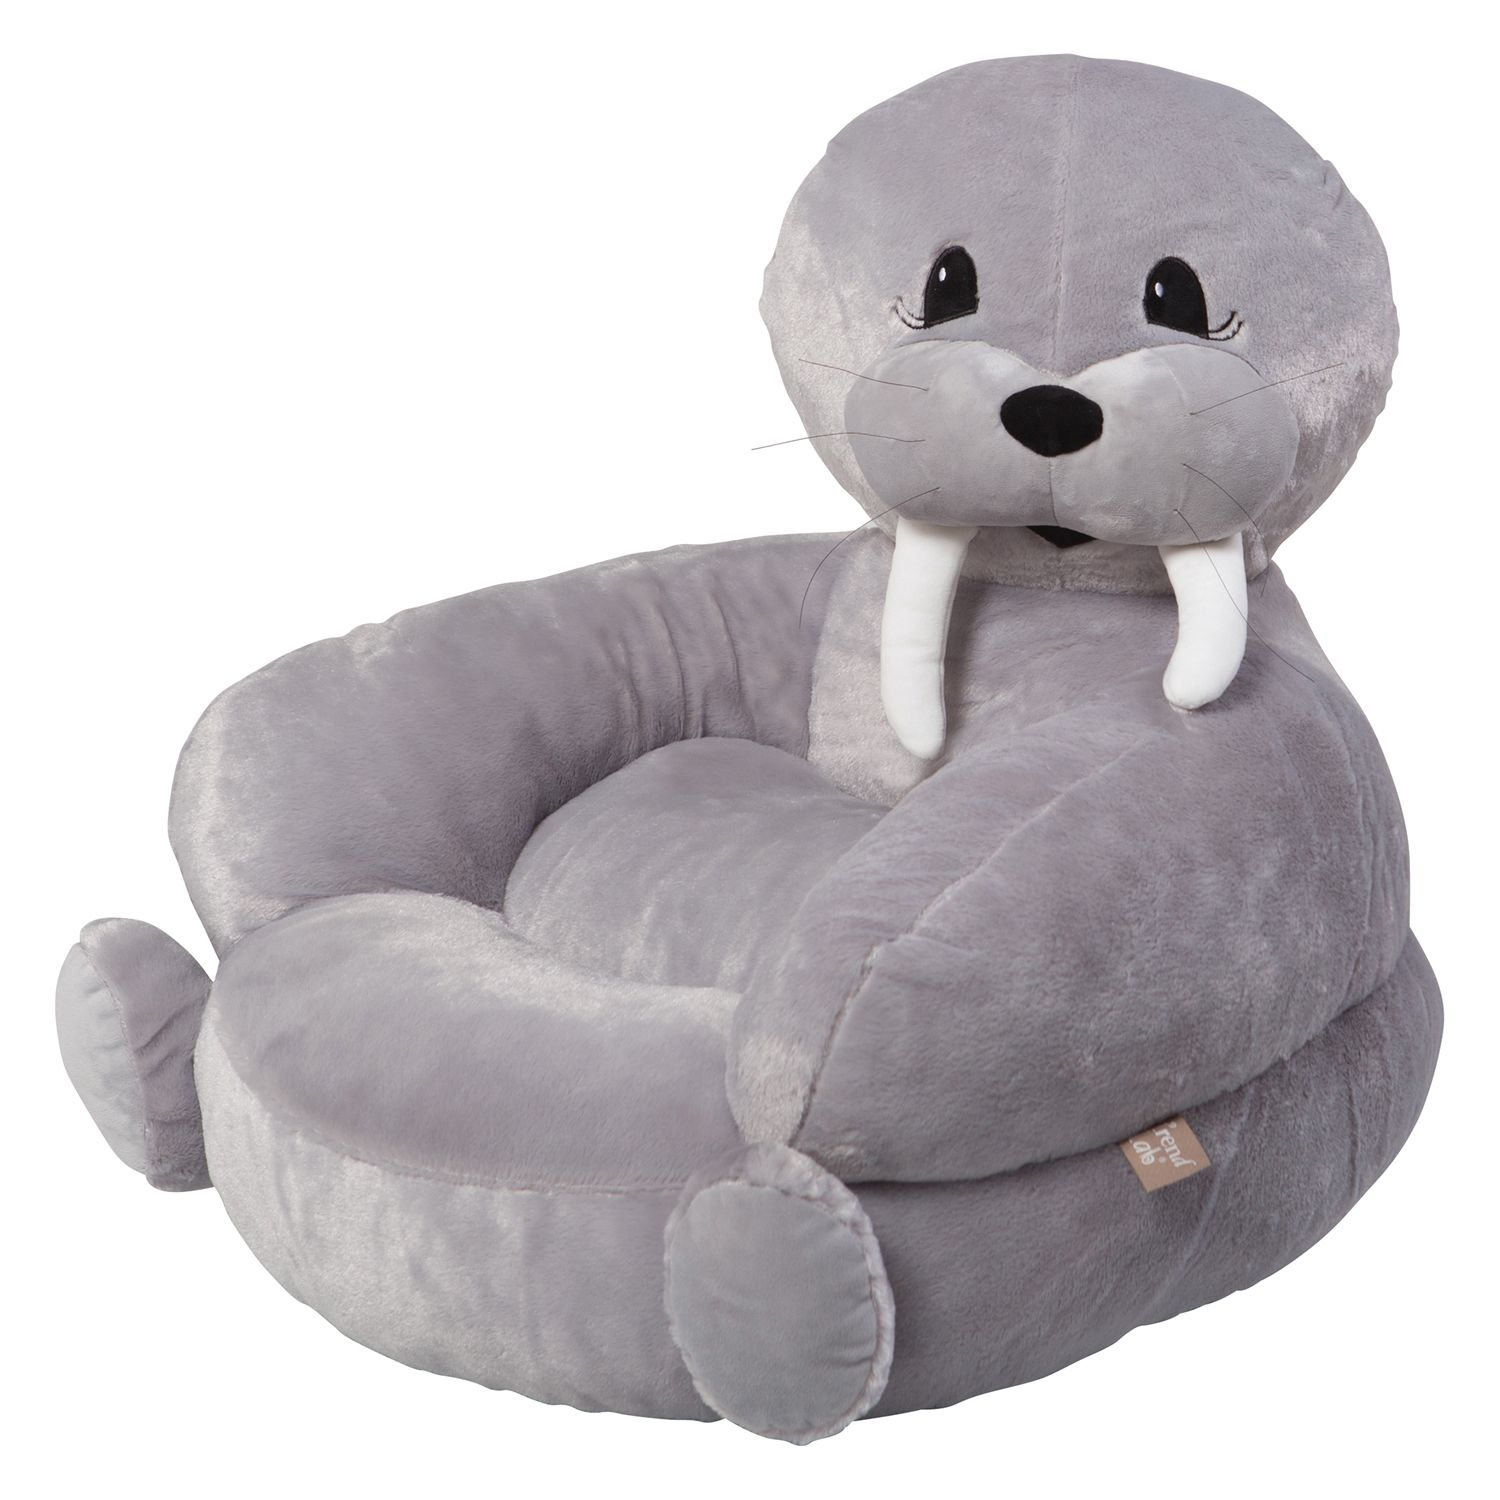 Exceptional Trend Lab Plush Animal Chair